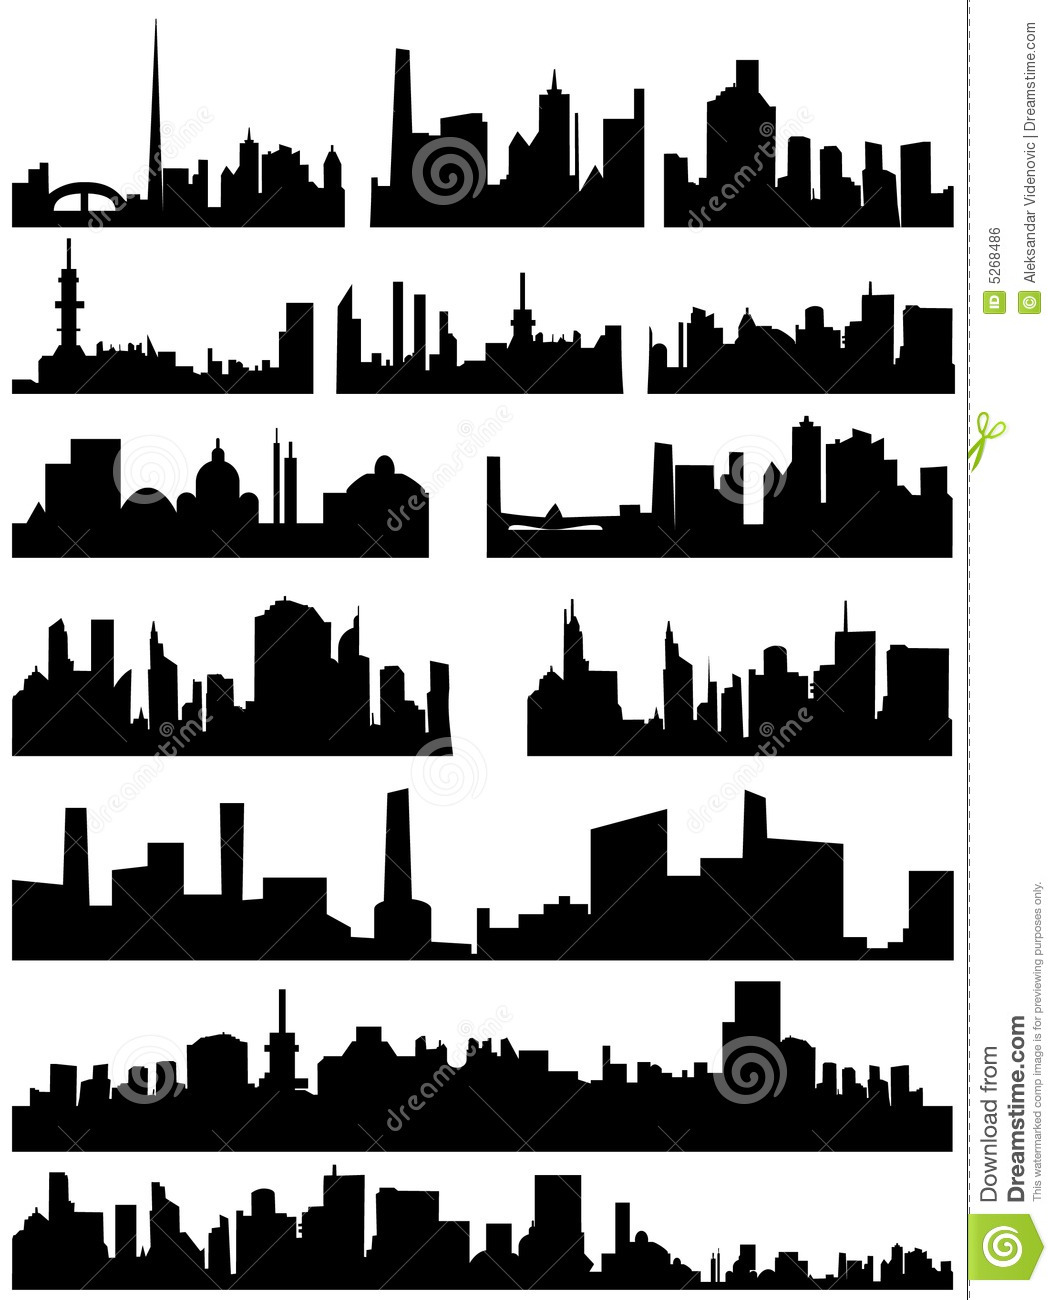 Cityscape Wall Stickers City Skyline Royalty Free Stock Image Image 5268486